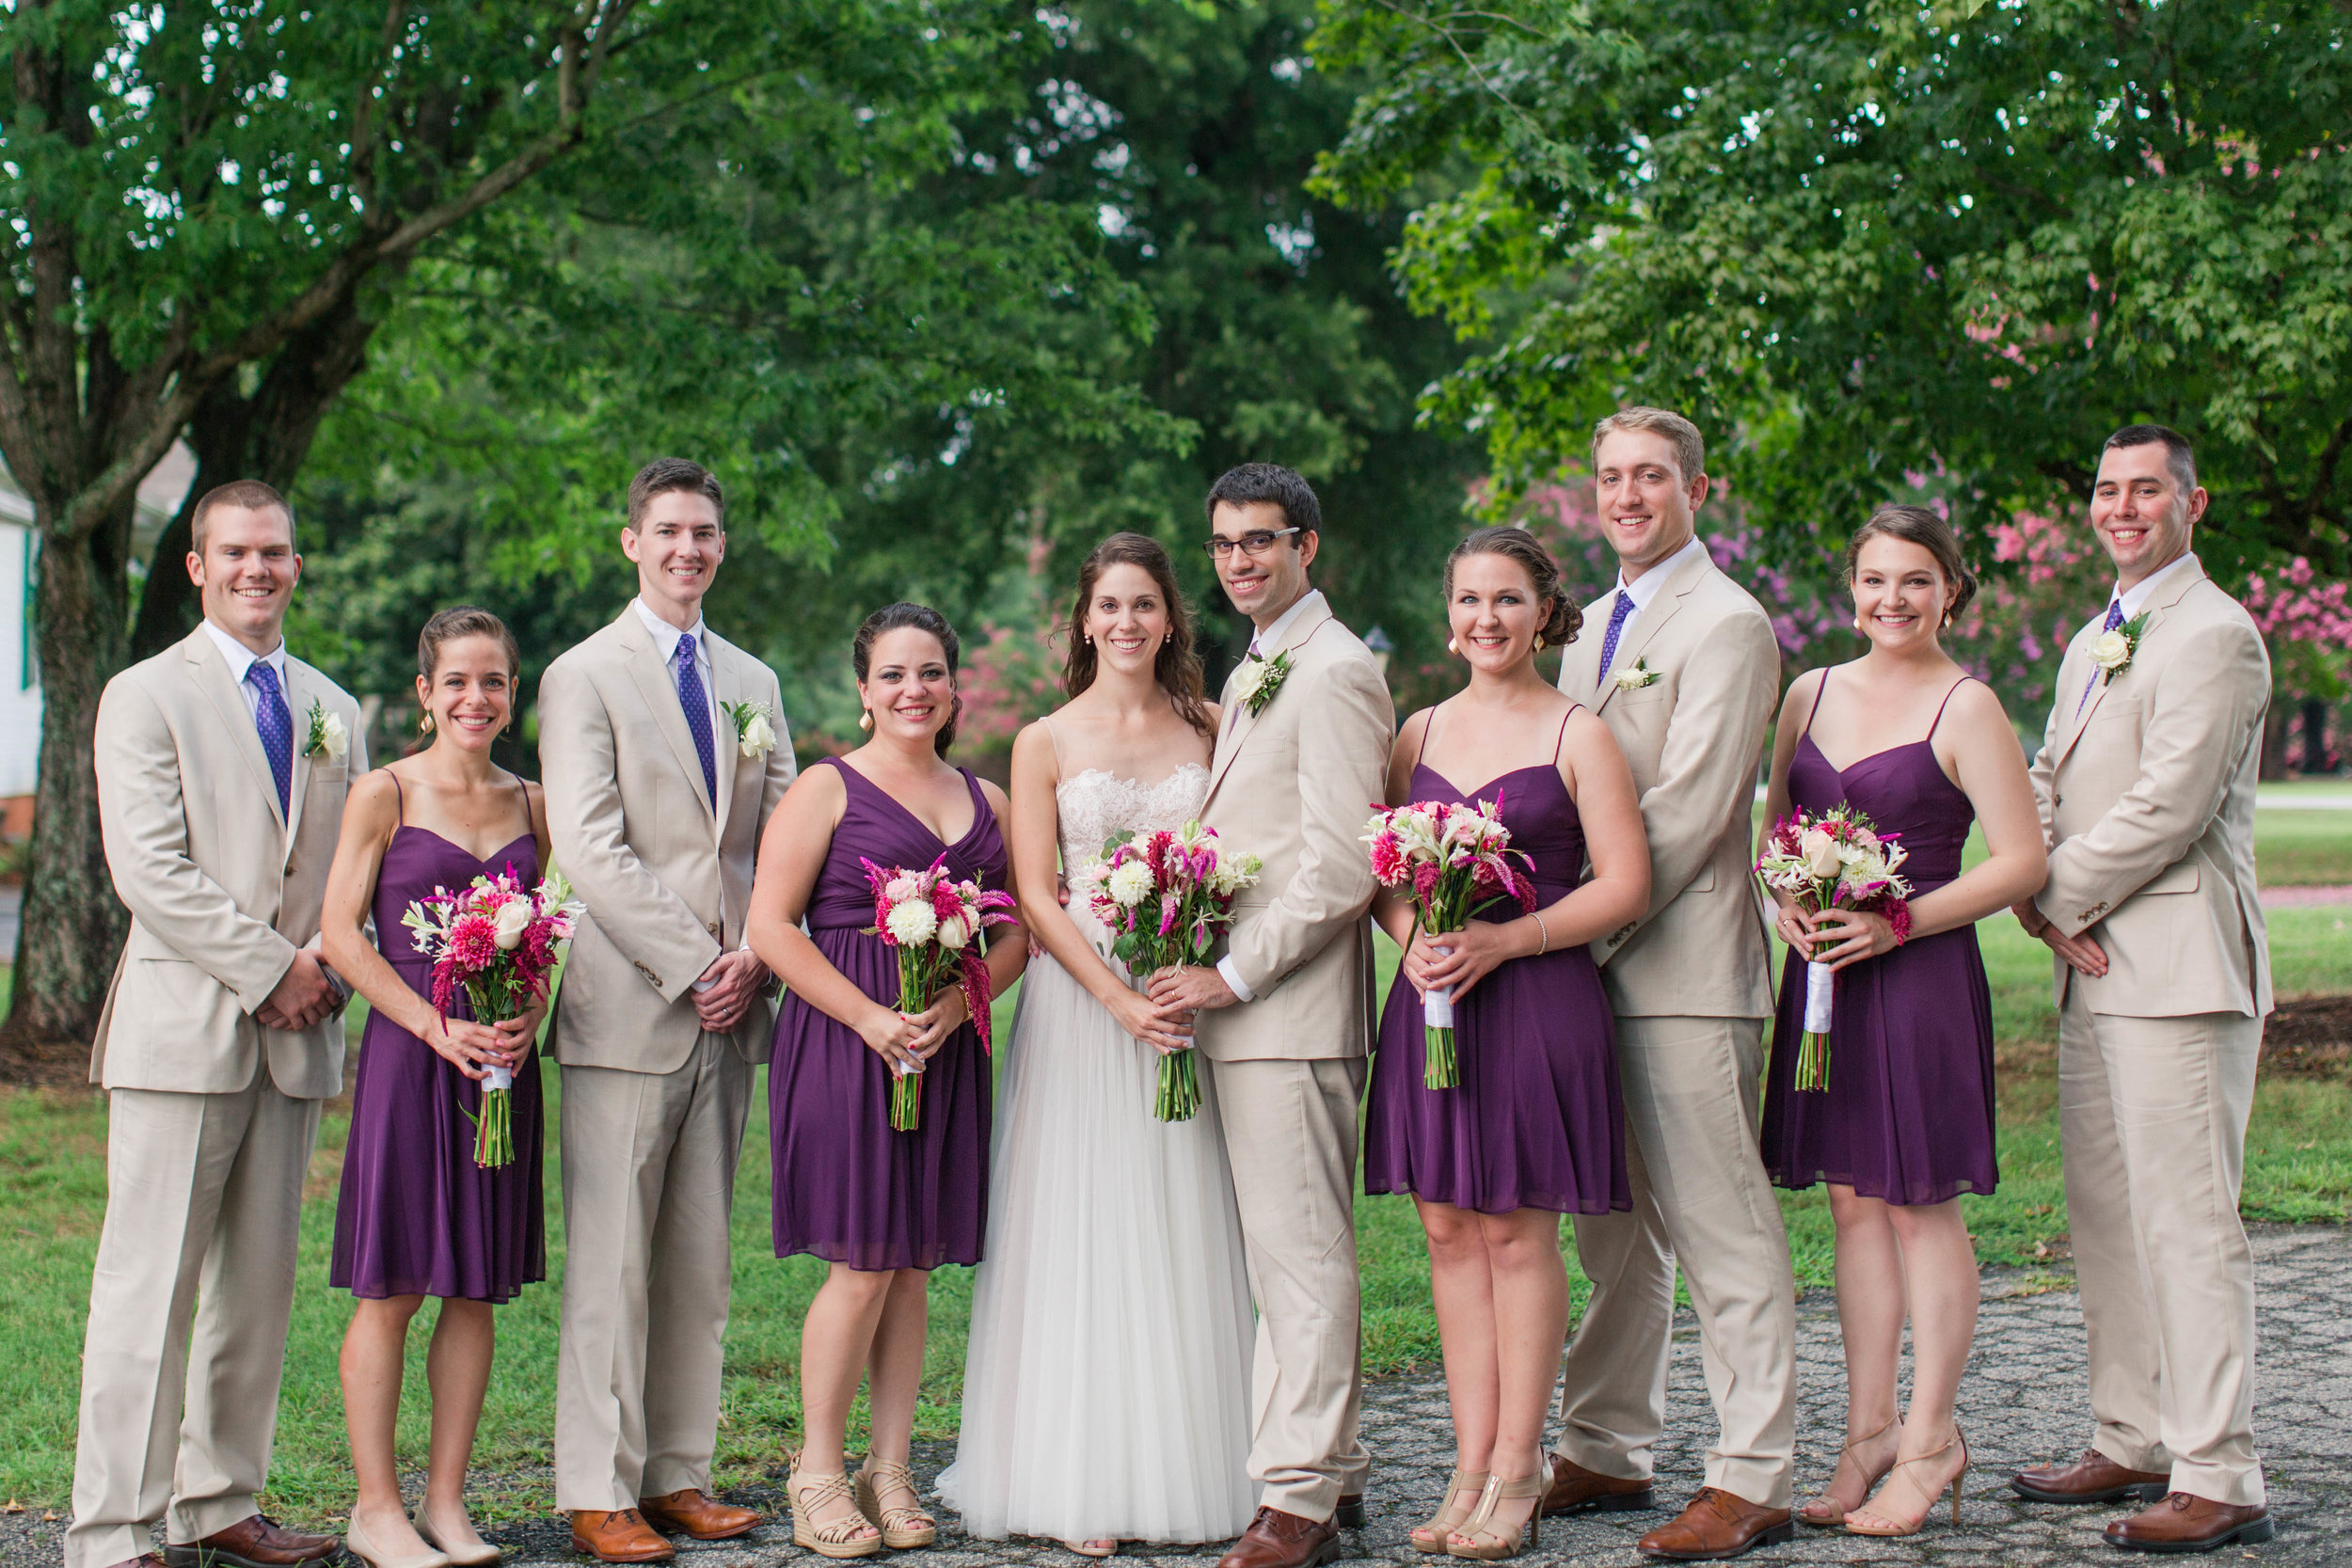 Amato_Family and Bridal Party_112.jpg